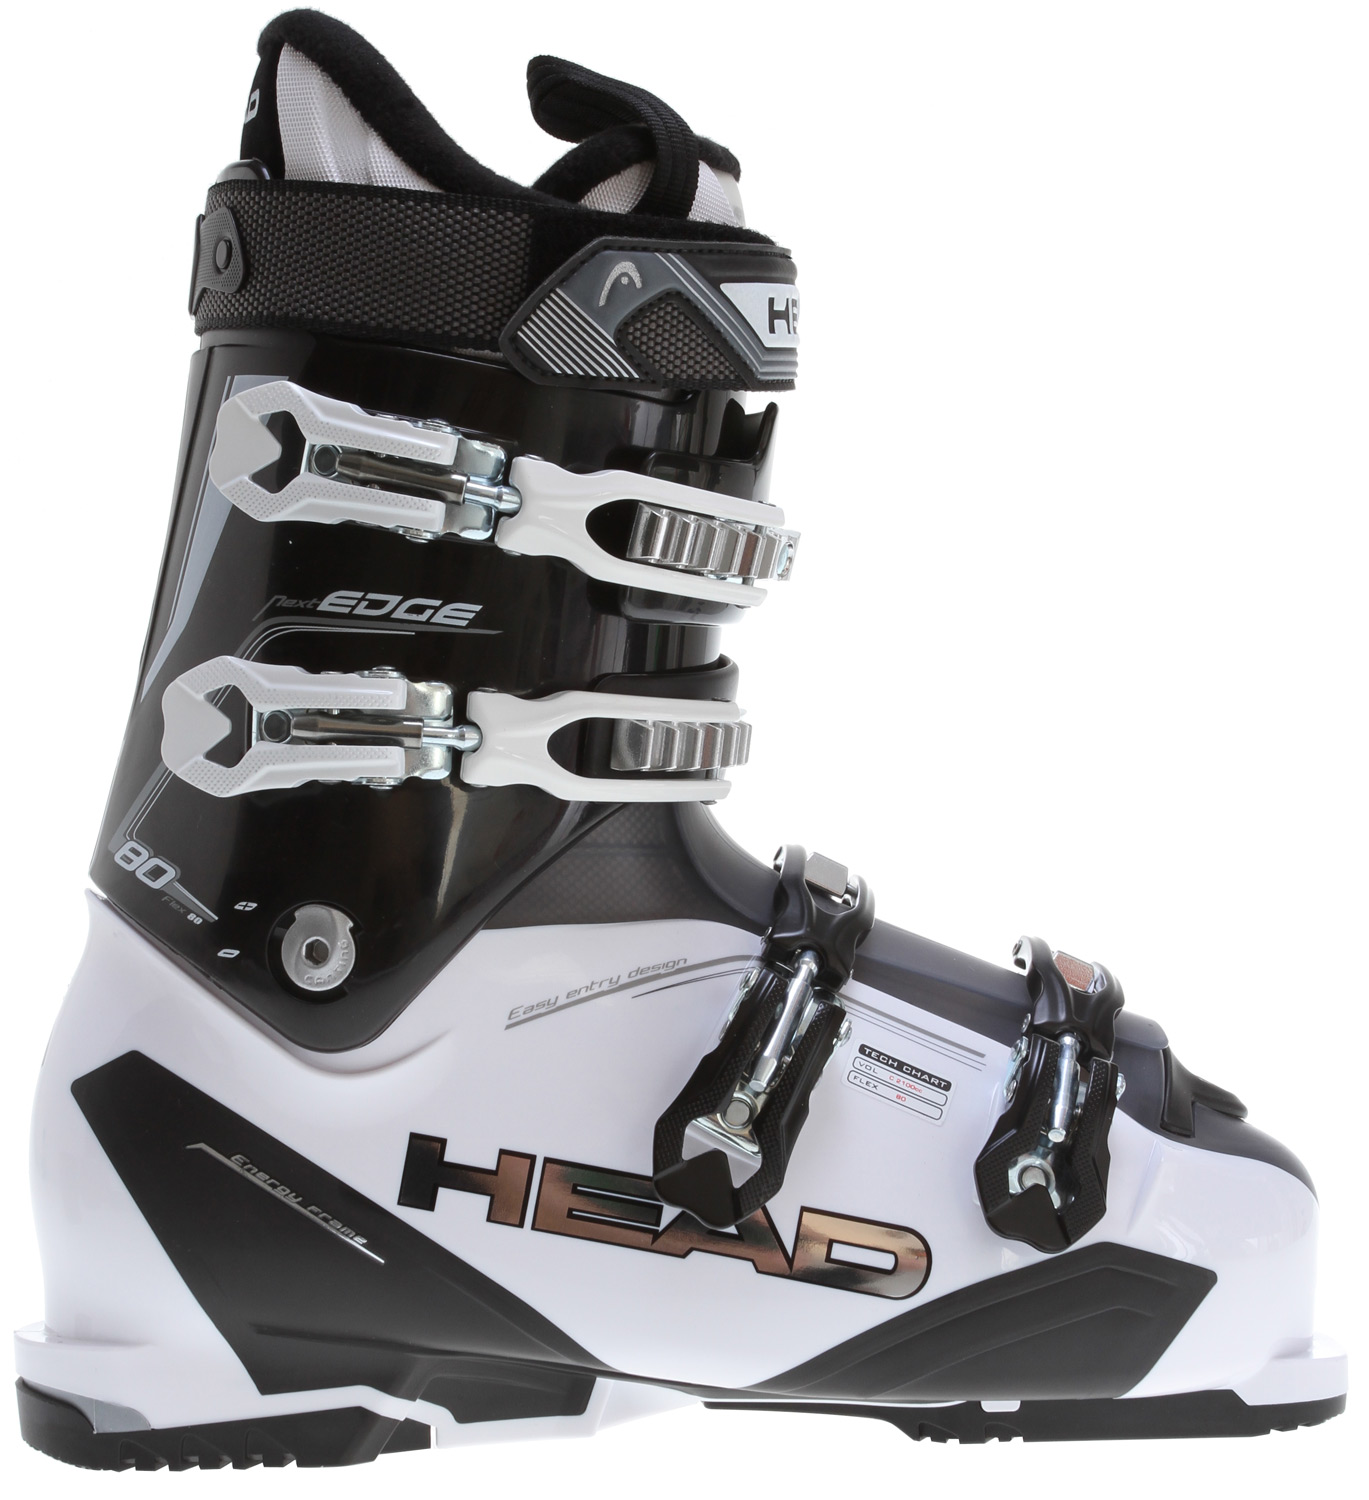 Ski Key Features of the Head Nextedge 80 Ski Boots White/Black: Level: Advance SL Shell Heatfit Liner Sport frame footbed 35mm Velcro strap Prepared for heating system 4 Micro adjustable alloy buckles 1 Supermacro ratchet Tri-inj Energy frame Easy Entry shell design Double canting Softwalk heel Flex index: 80 - $243.95